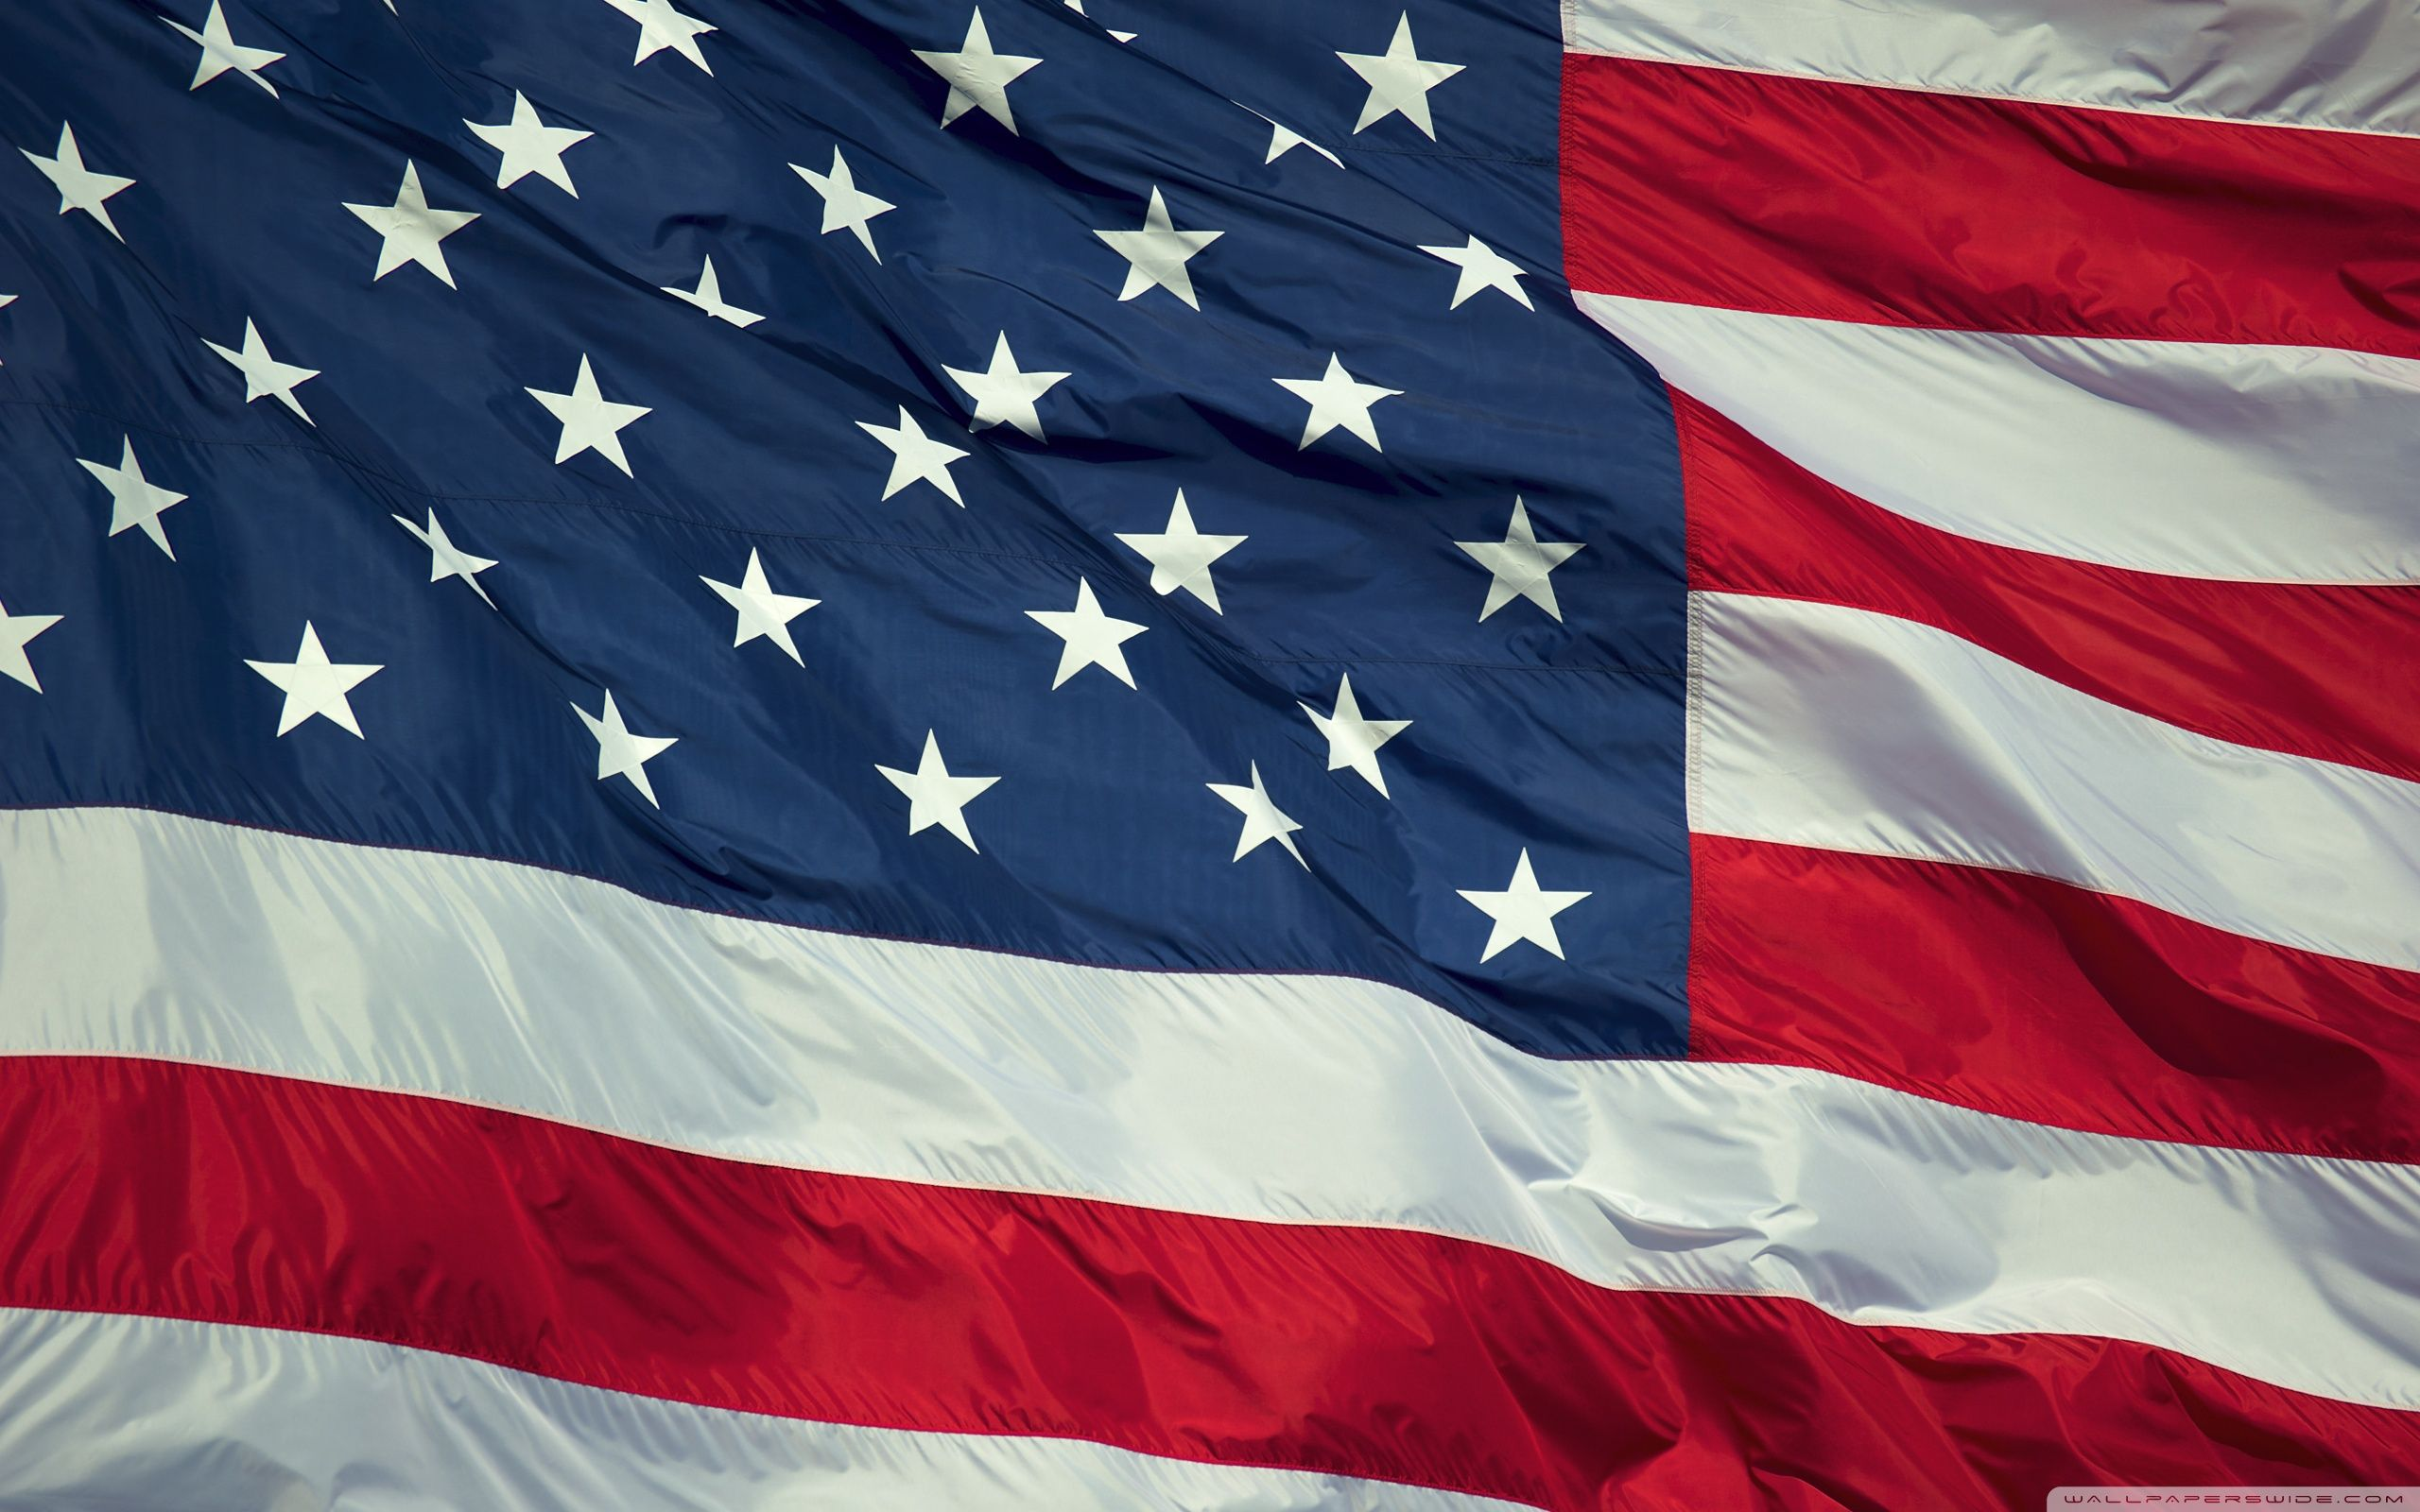 American Flag 4k Wallpapers Top Free American Flag 4k Backgrounds Wallpaperaccess